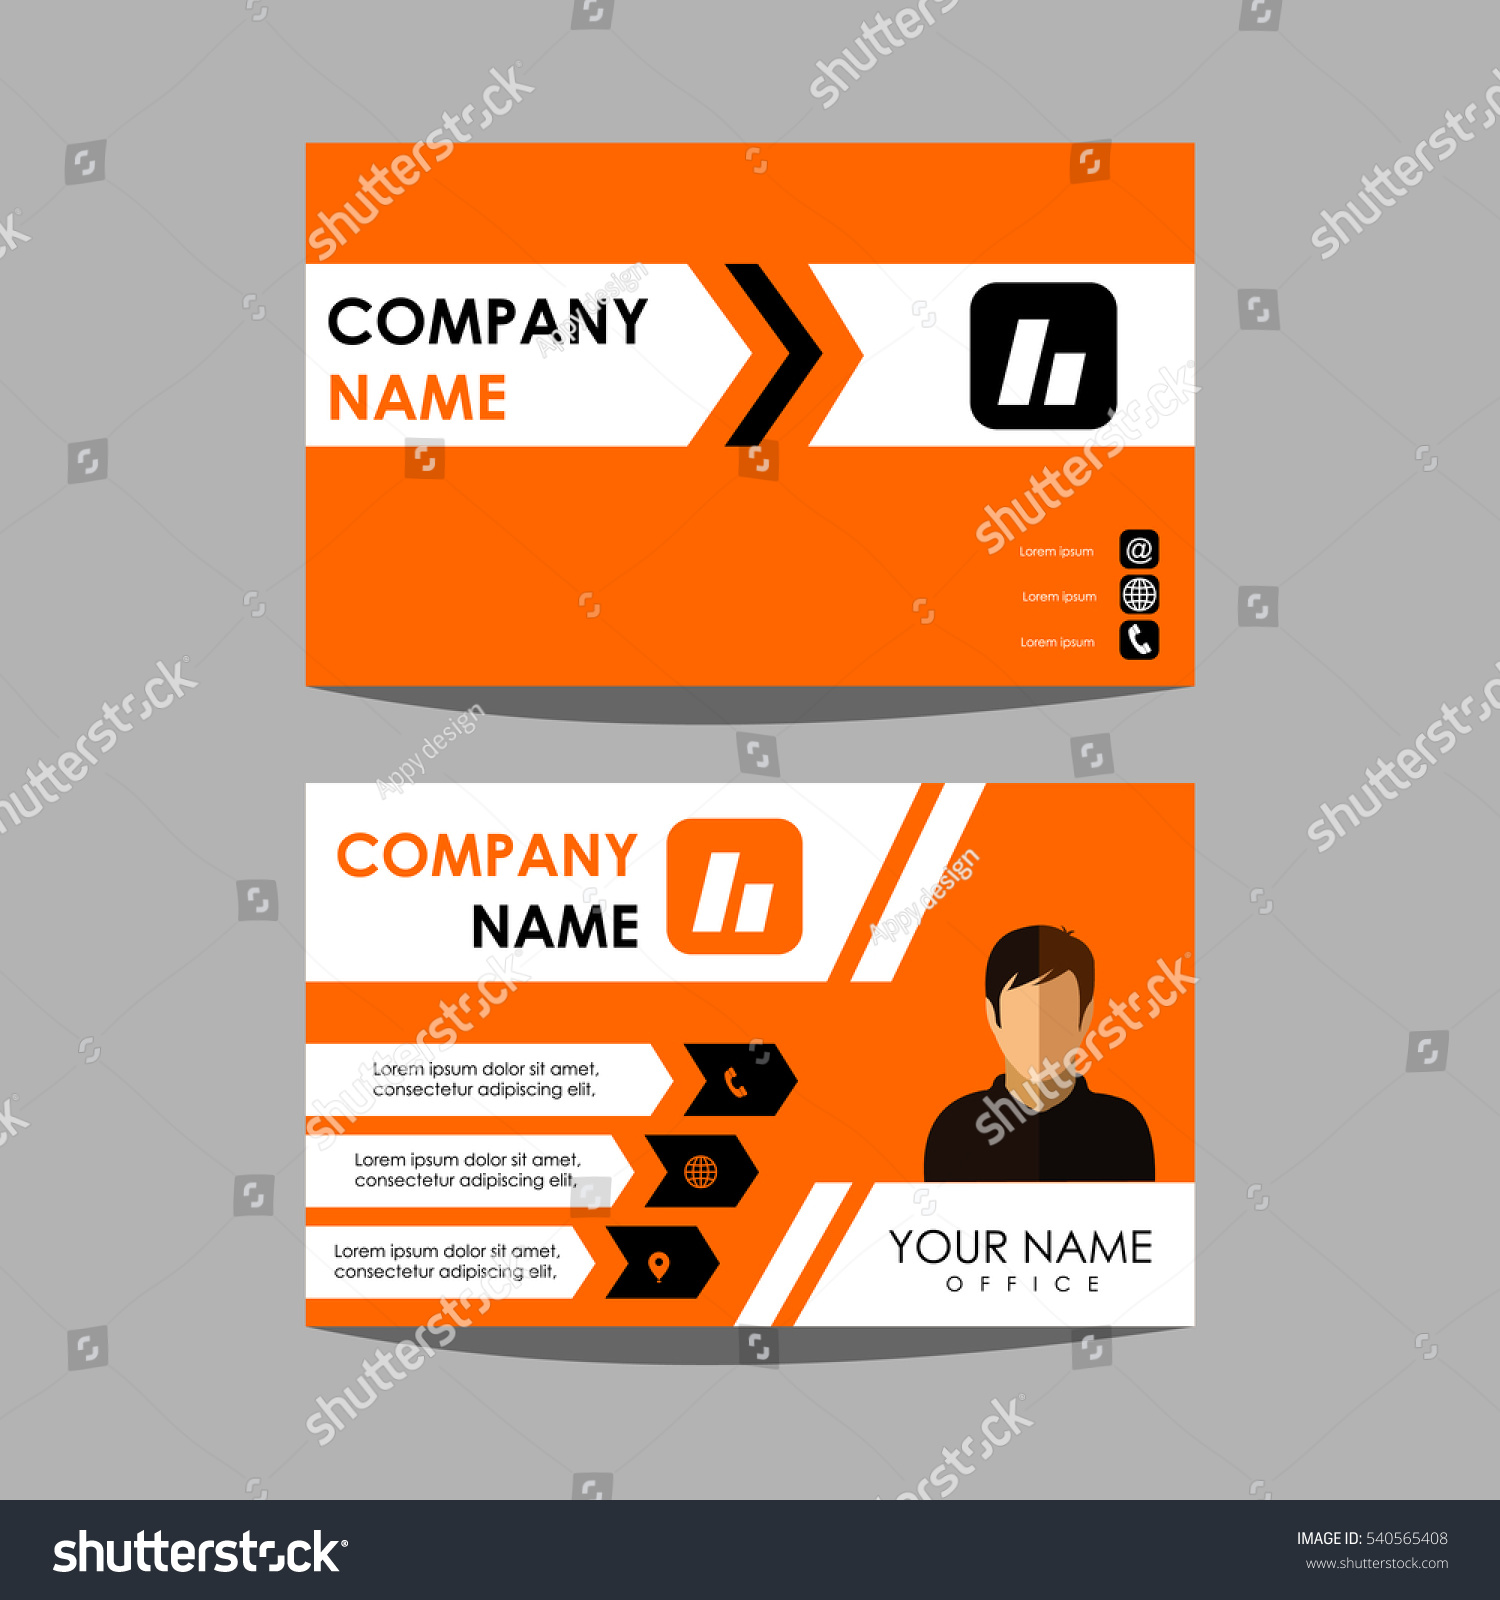 Royalty-free Layout design template id card and… #540565408 Stock ...